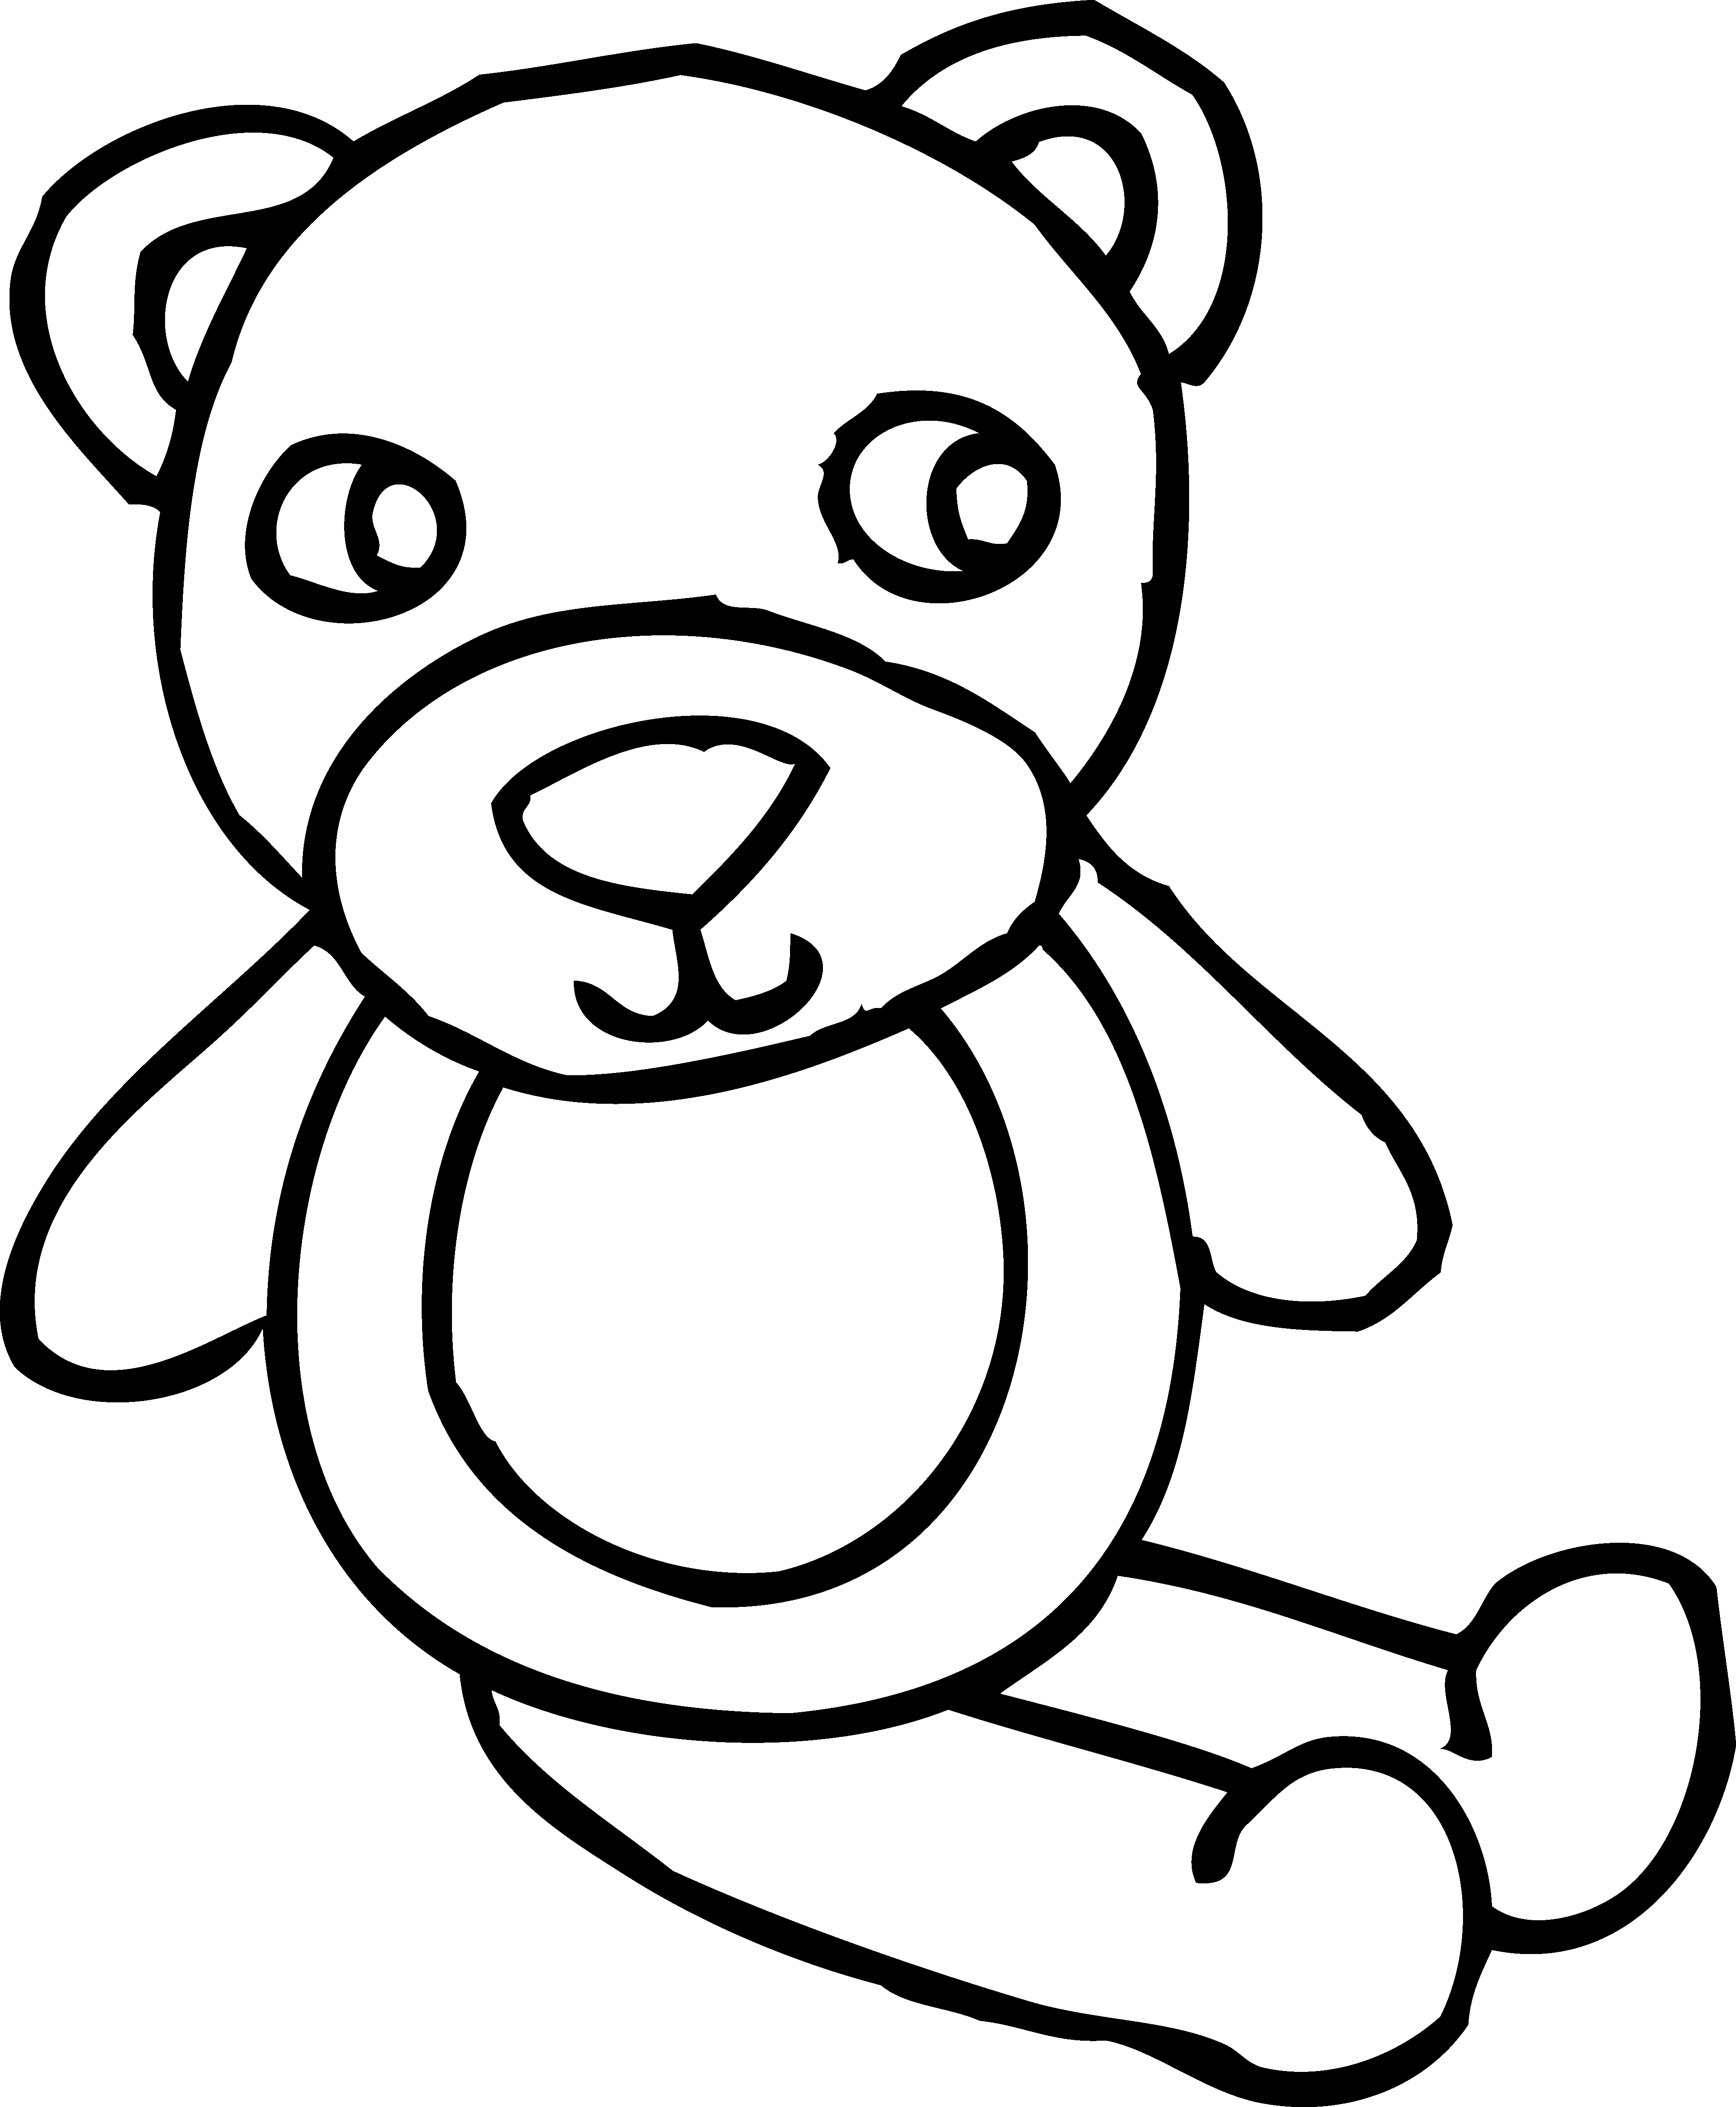 4006x4862 Outline Of A Bear Ocoloringpages Clip Art